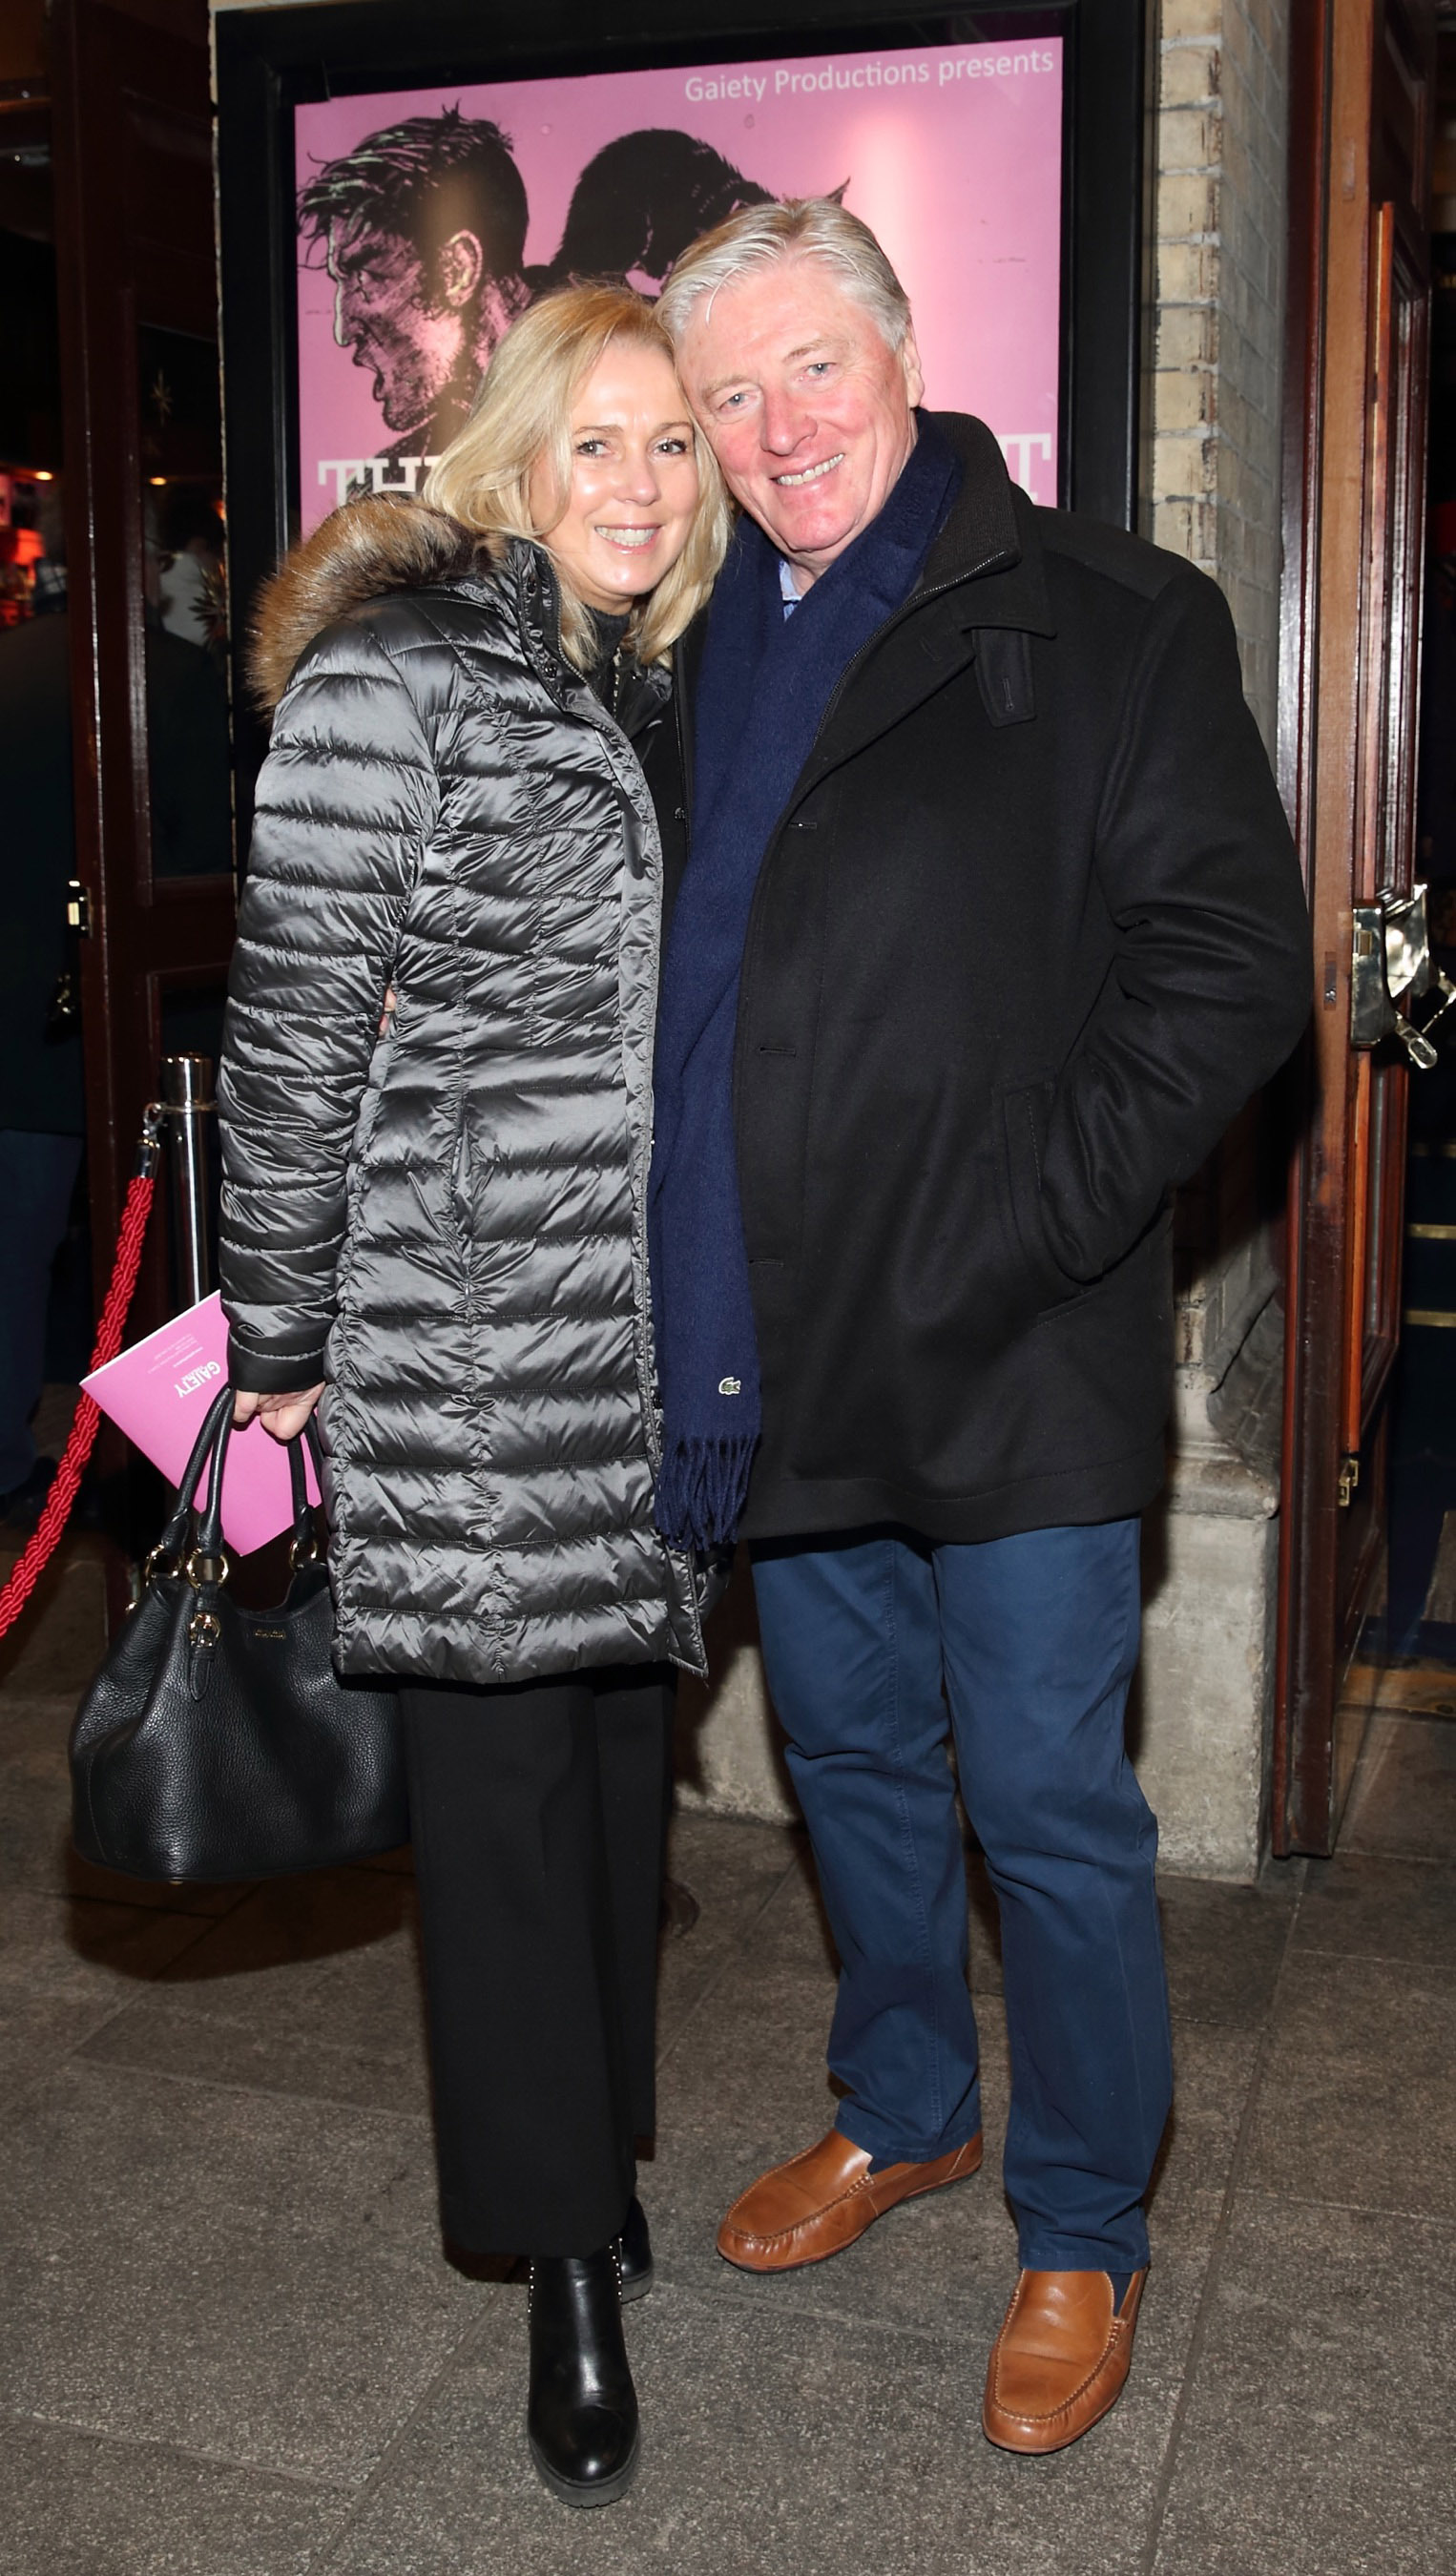 Cathy Kenny and Pat Kenny pictured at the opening of the Gaiety Theatre's major new production of Martin McDonagh's 'The Lieutenant of Inishmore', which will run at the Gaiety Theatre until 14th March.